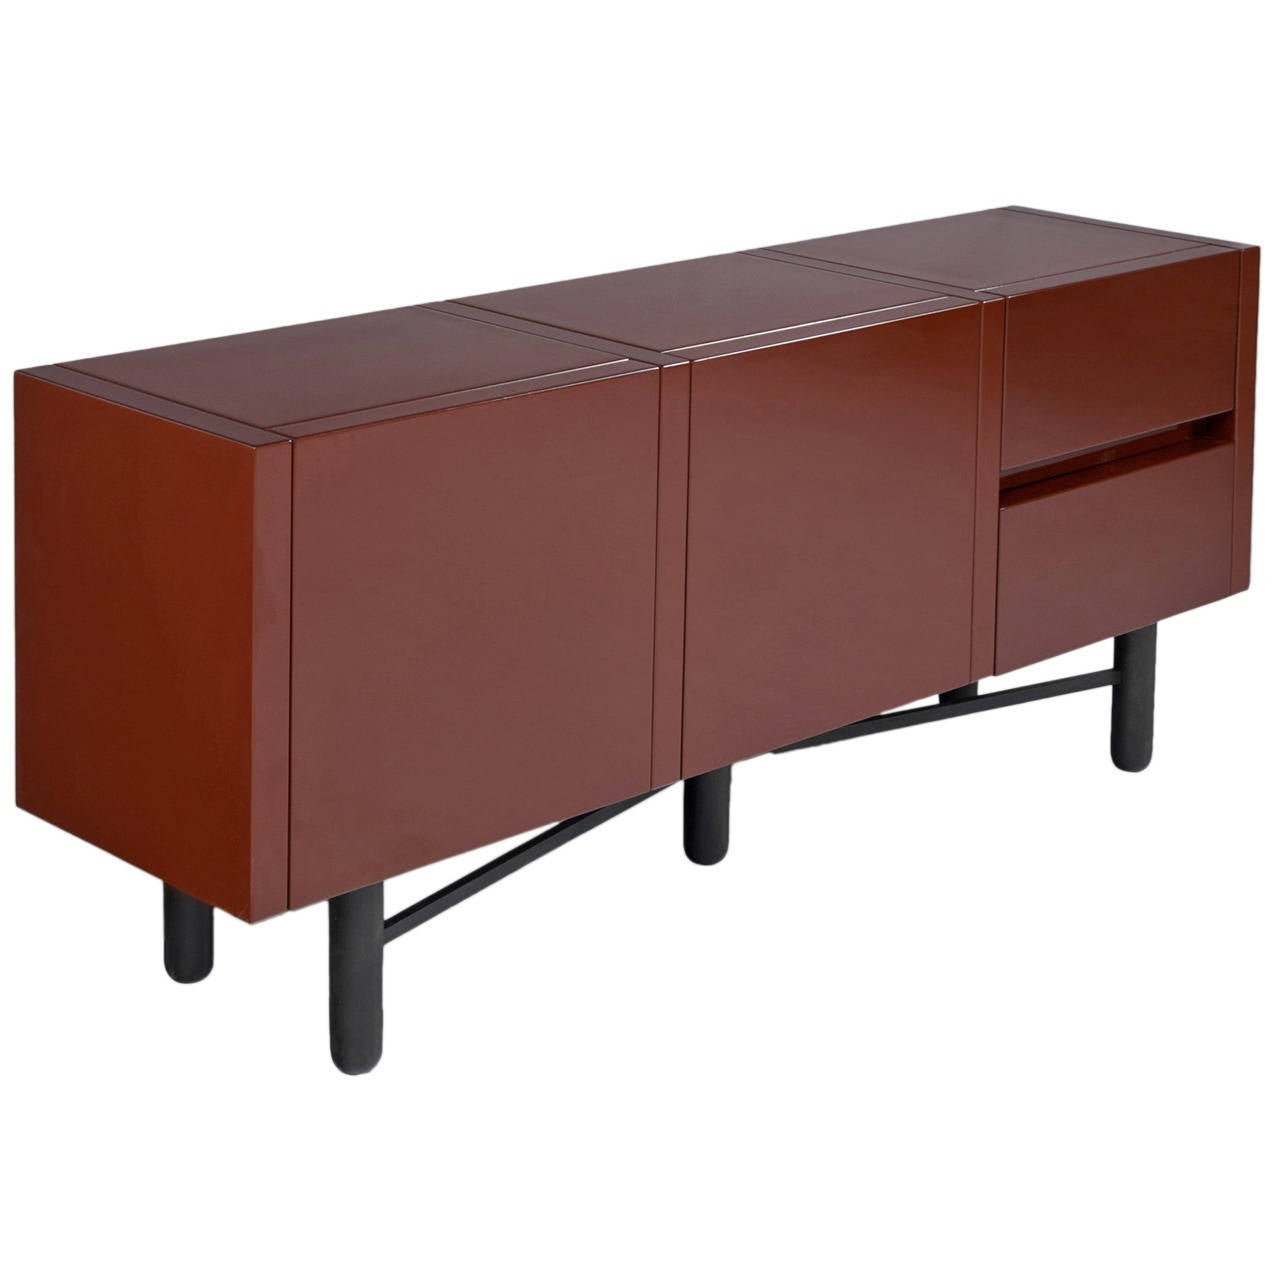 roche bobois red lacquered high gloss sideboard for sale at 1stdibs. Black Bedroom Furniture Sets. Home Design Ideas